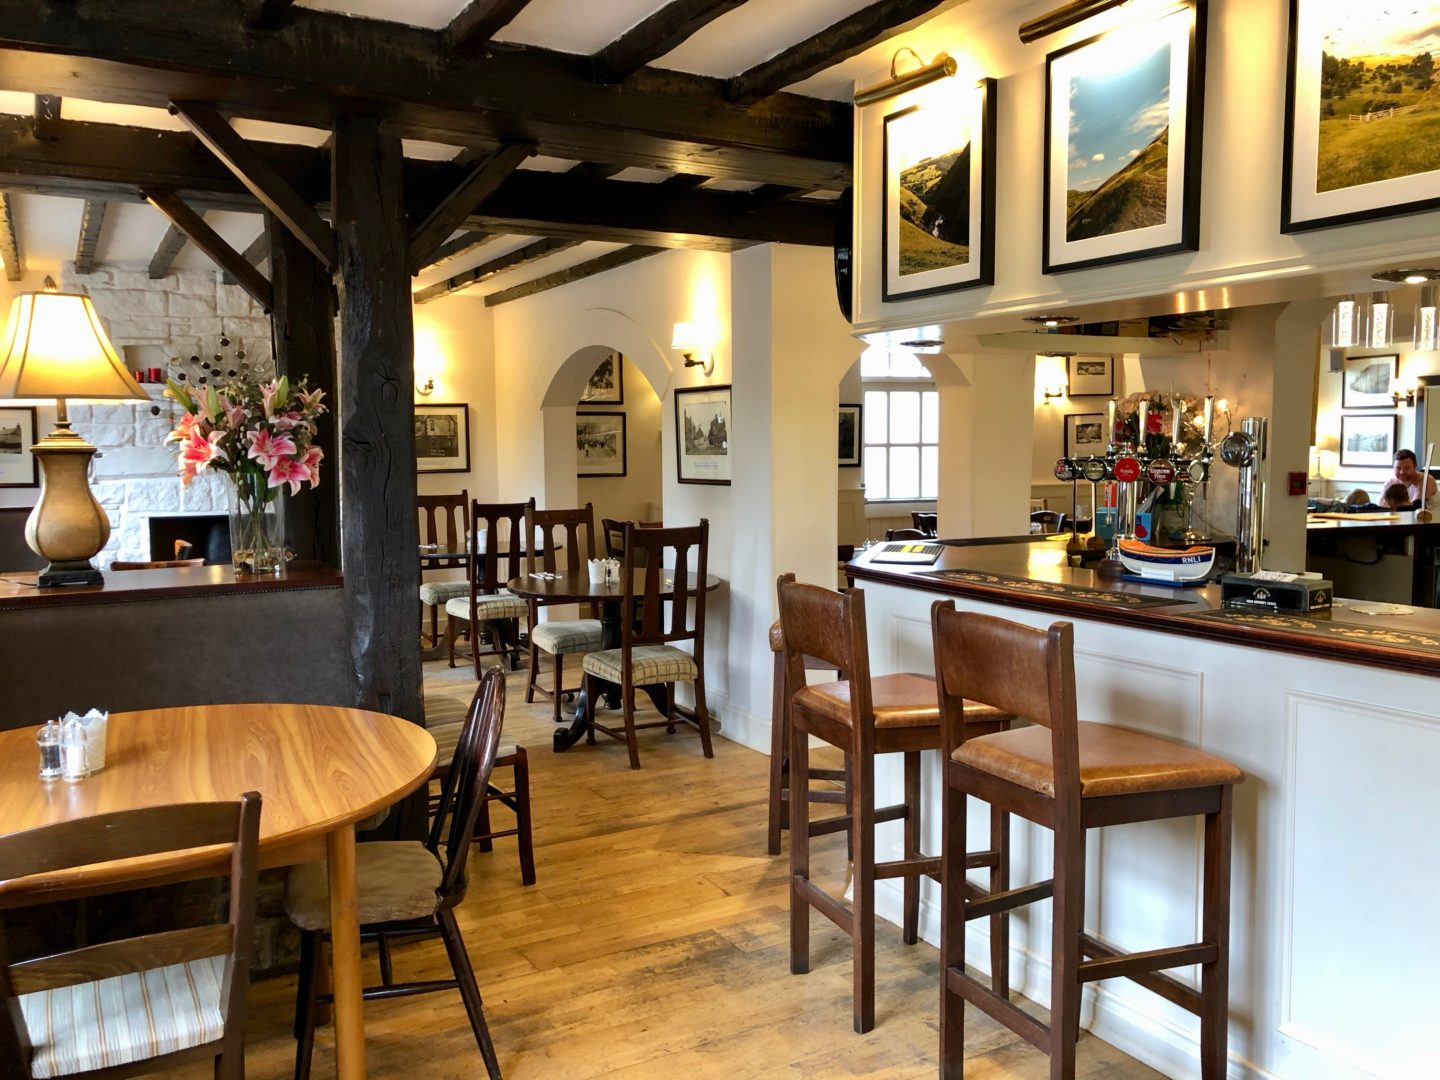 AD: Landal Sandybrook Peak District family review - a relaxing autumnal long weekend break. The Rose and Crown, Mayfield, Peak District.